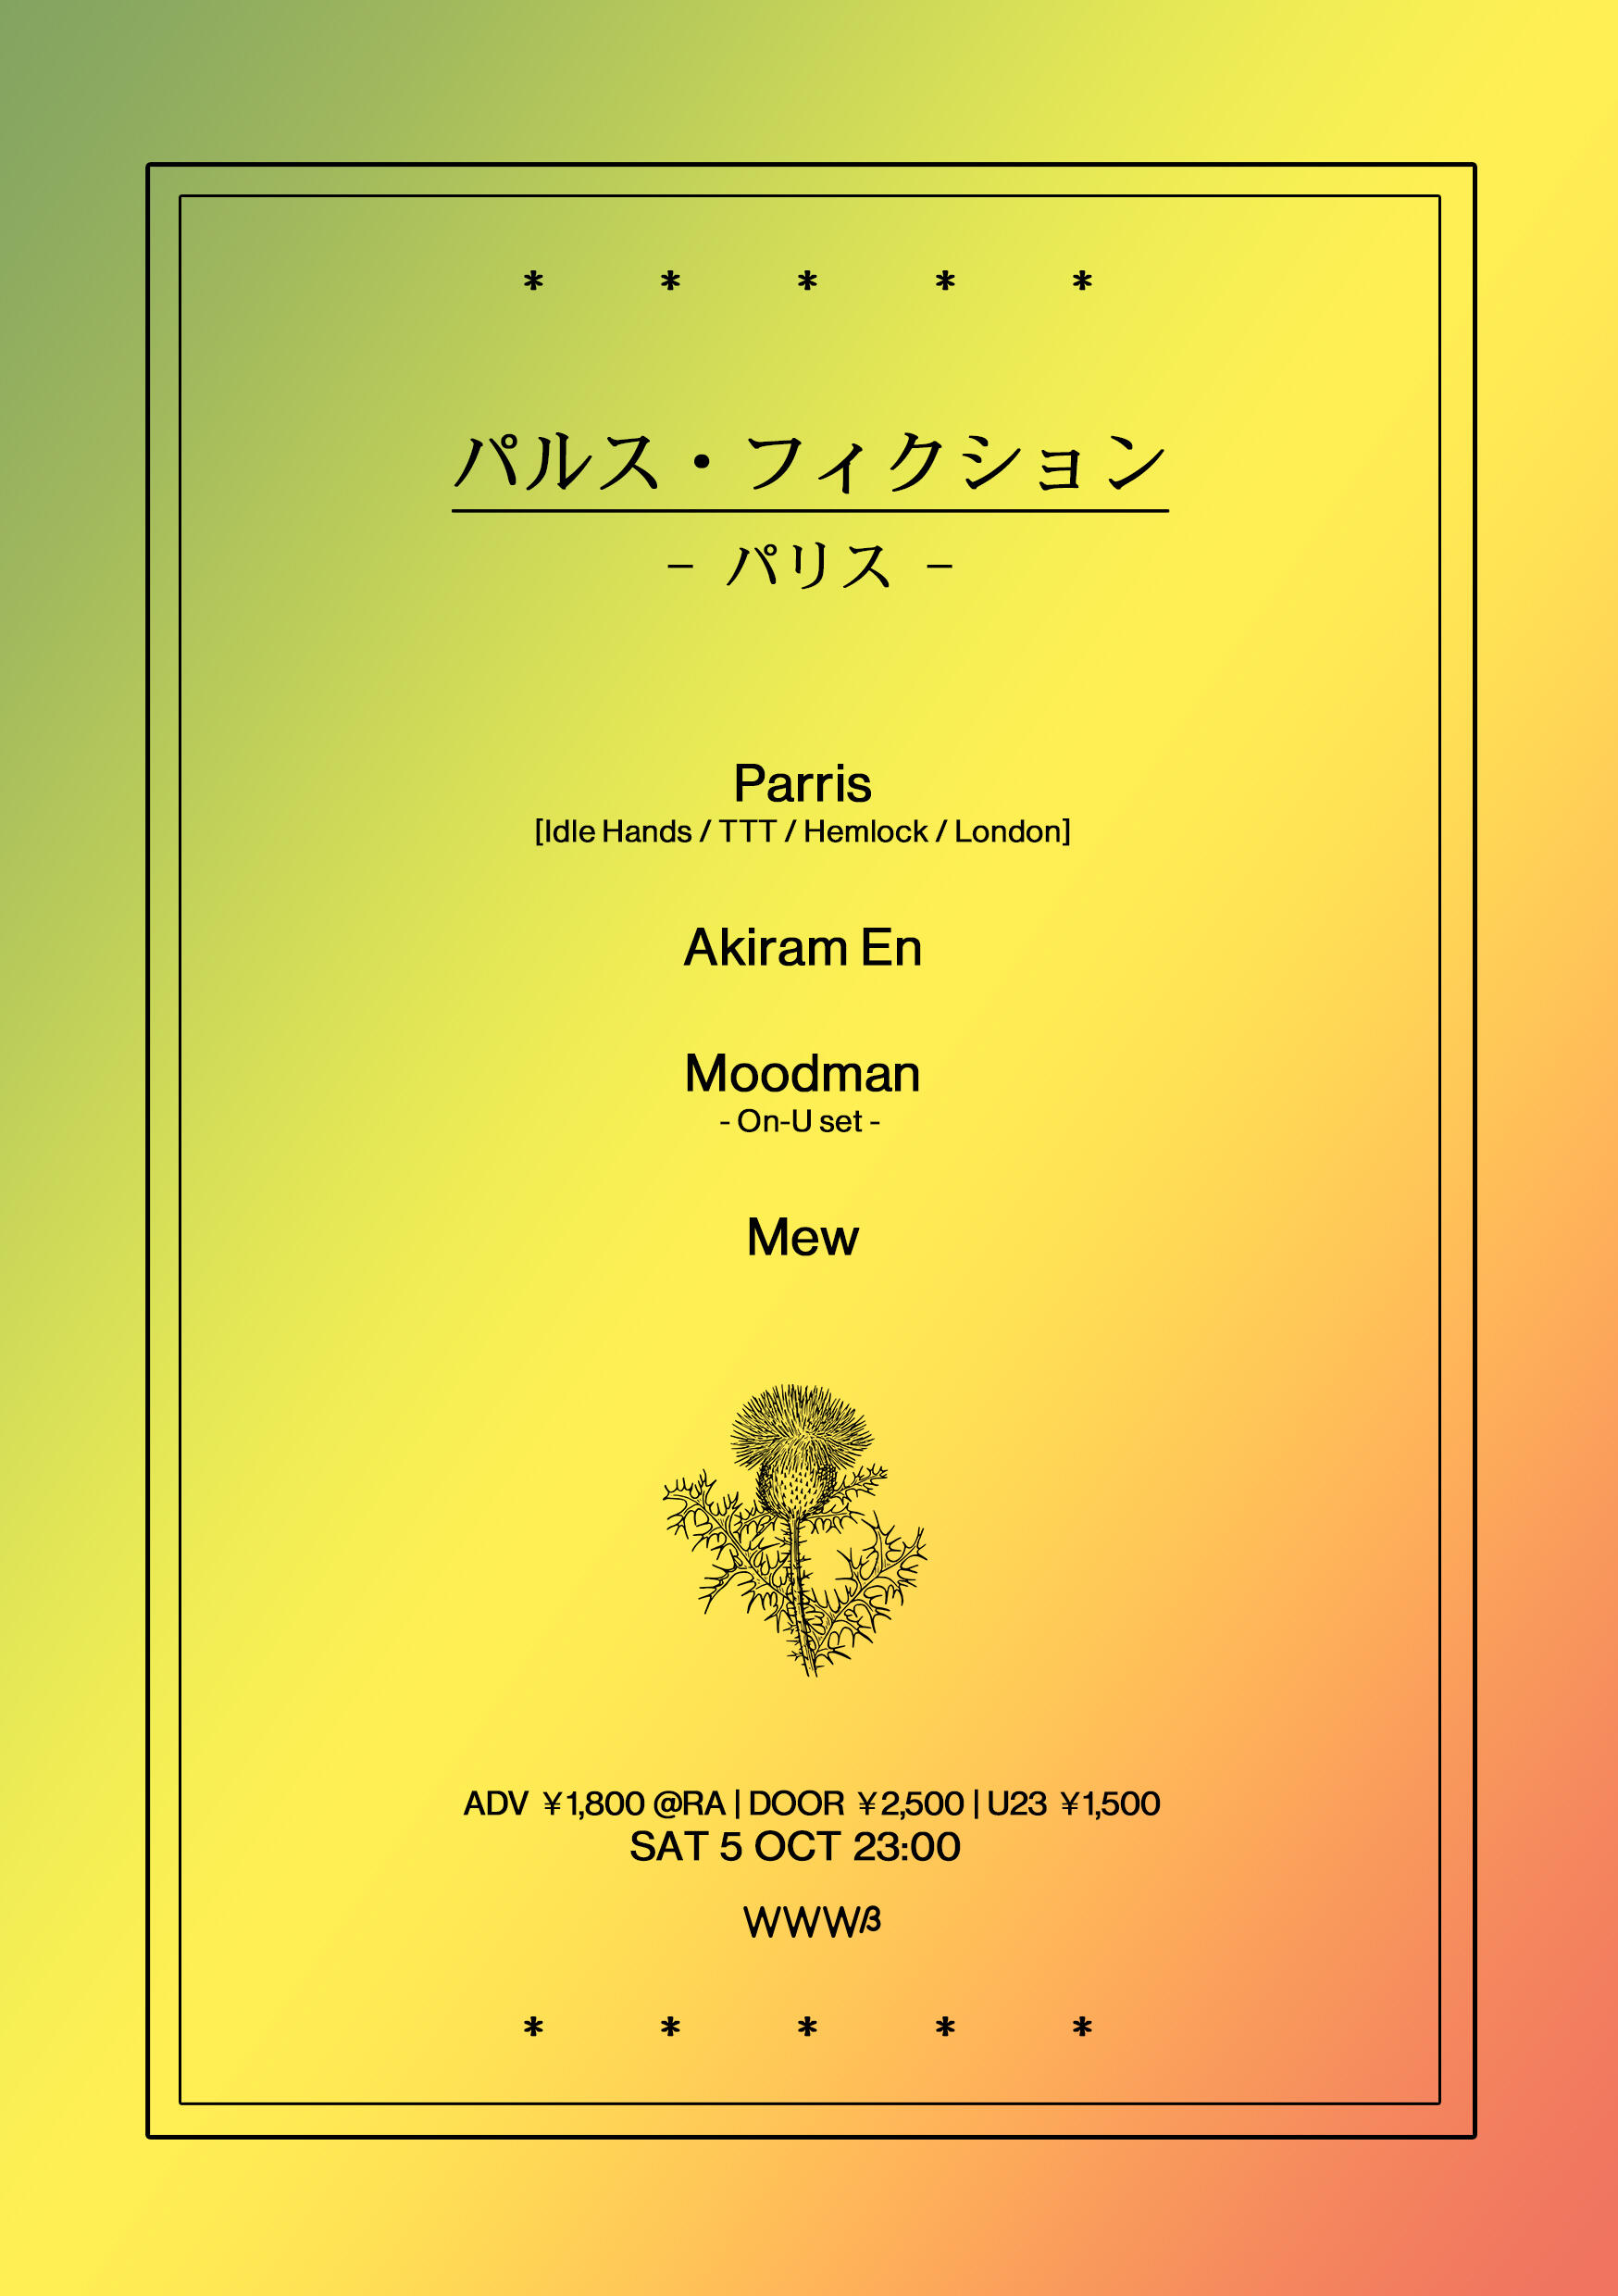 Parris [Idle Hands / TTT / Hemlock / London] / Akiram En / Moodman - On-U set - / Mew